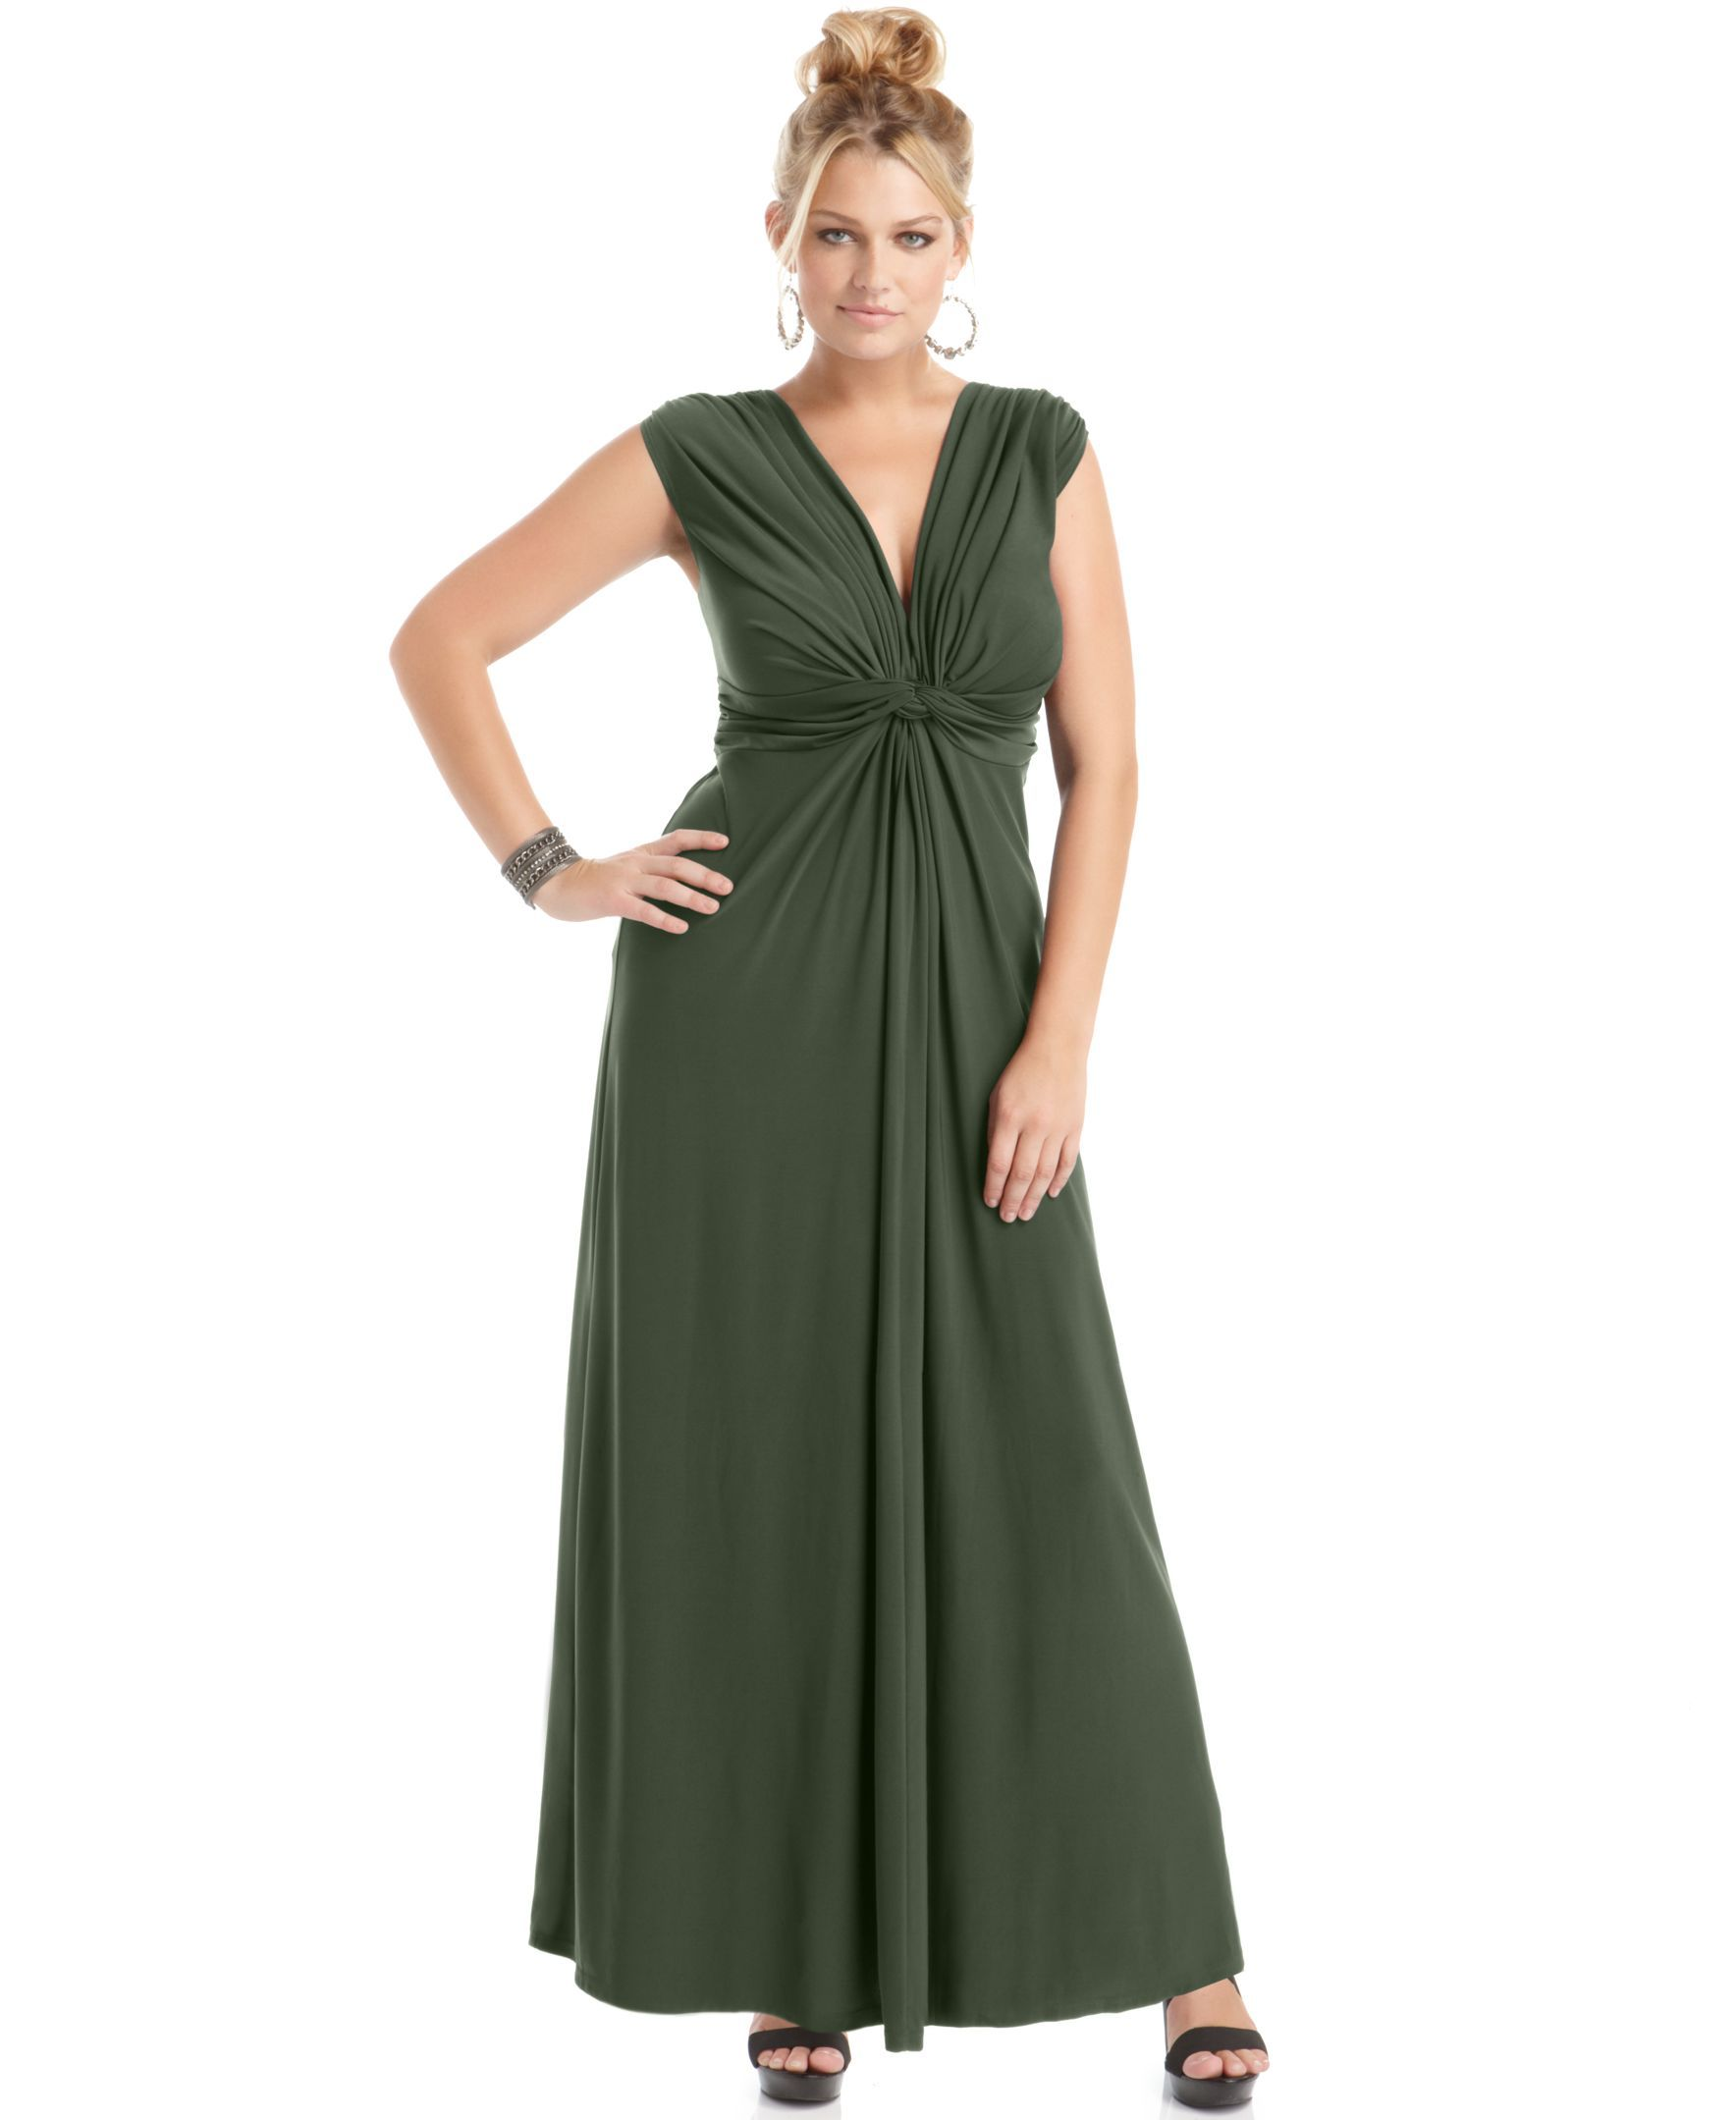 44304e197bd11 Love Squared Plus Size Sleeveless Knotted Maxi Dress - Trendy Plus Sizes - Plus  Sizes - Macy s